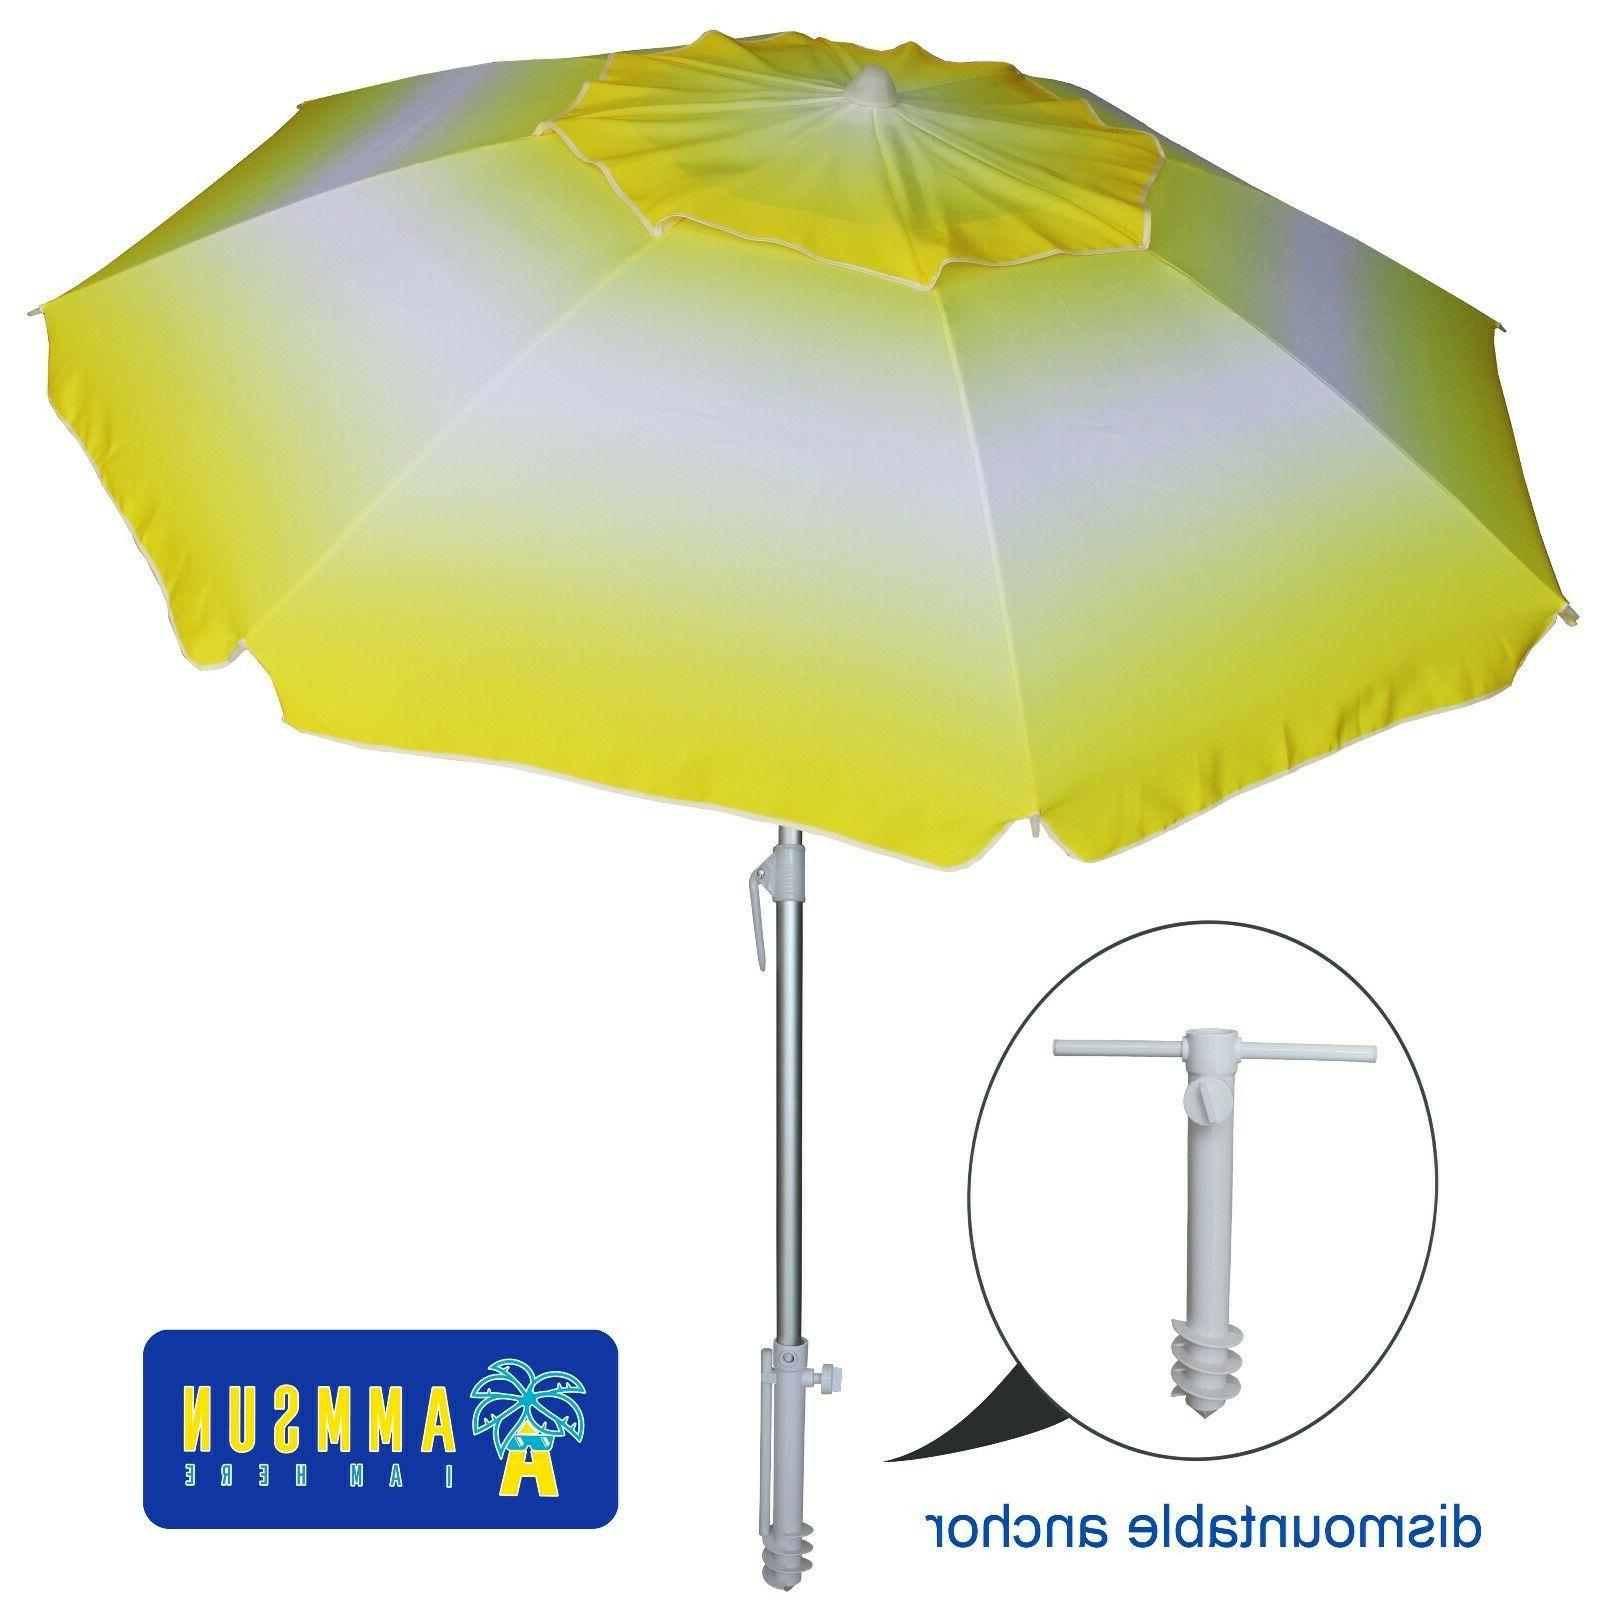 6 5ft beach umbrella with tilt separate